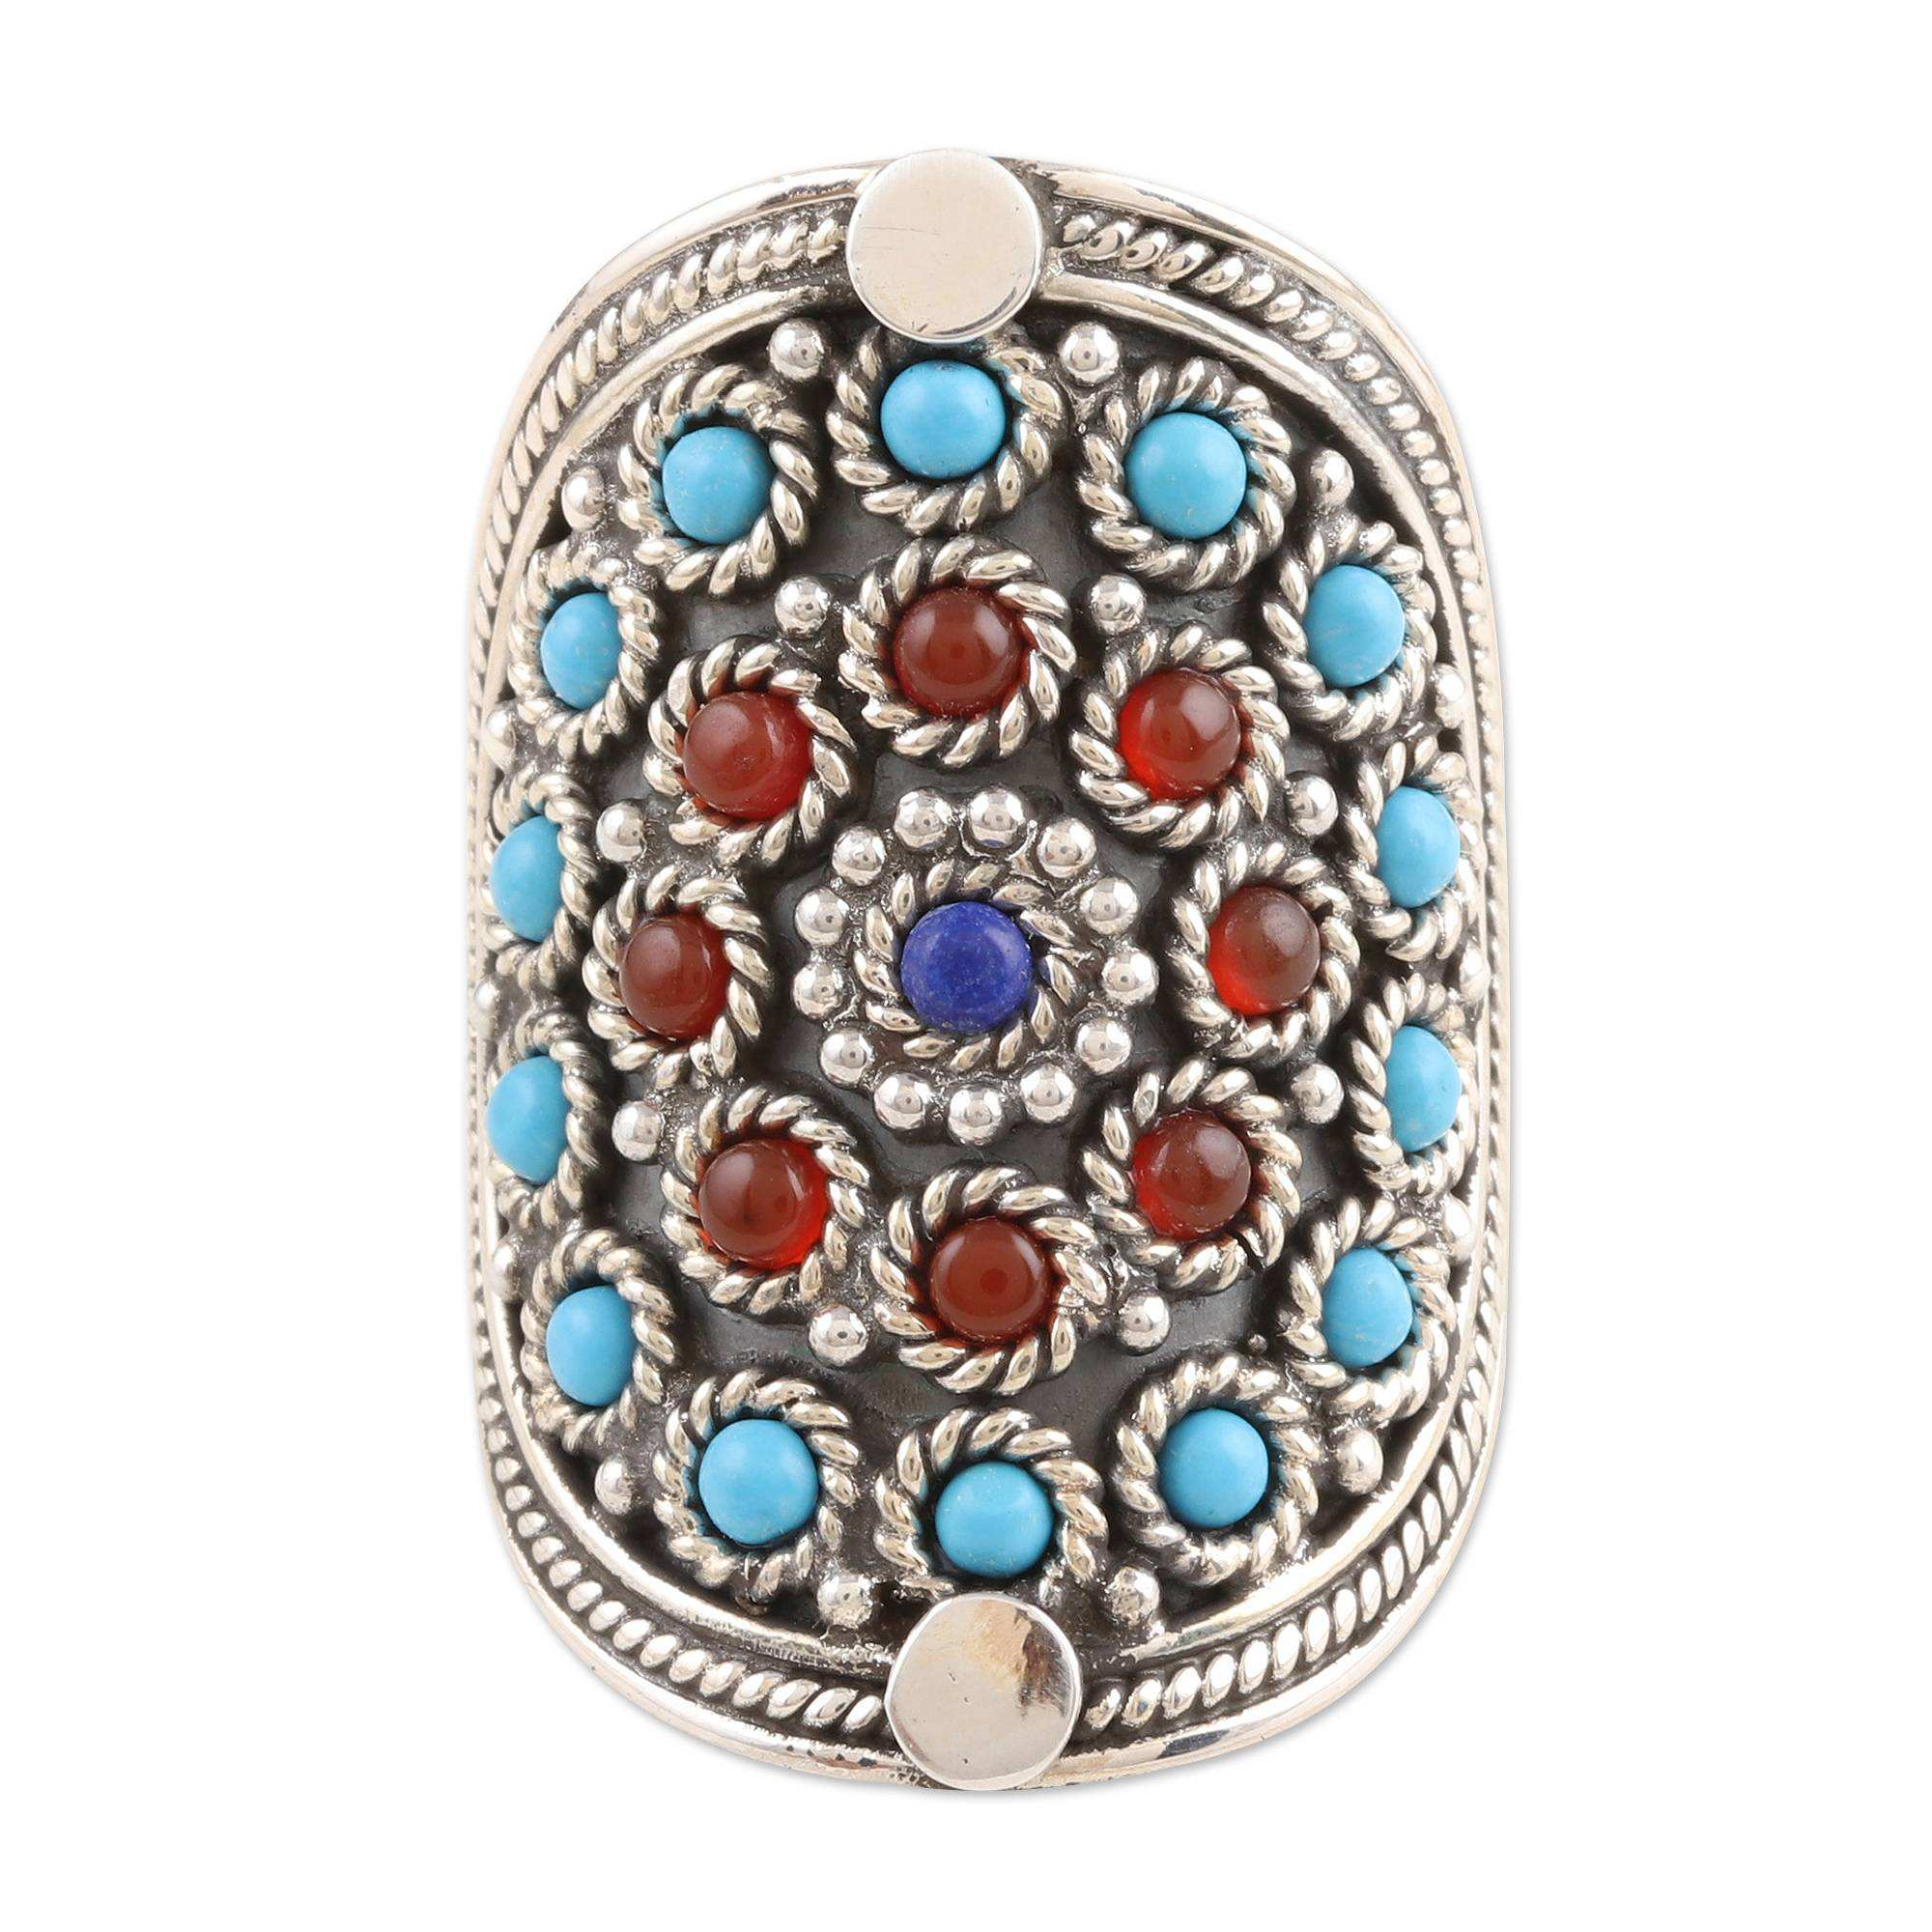 Turquoise, lapis lazuli, carnelian multi gemstone ring solid 925 sterling silver rings jewelry manufacturer